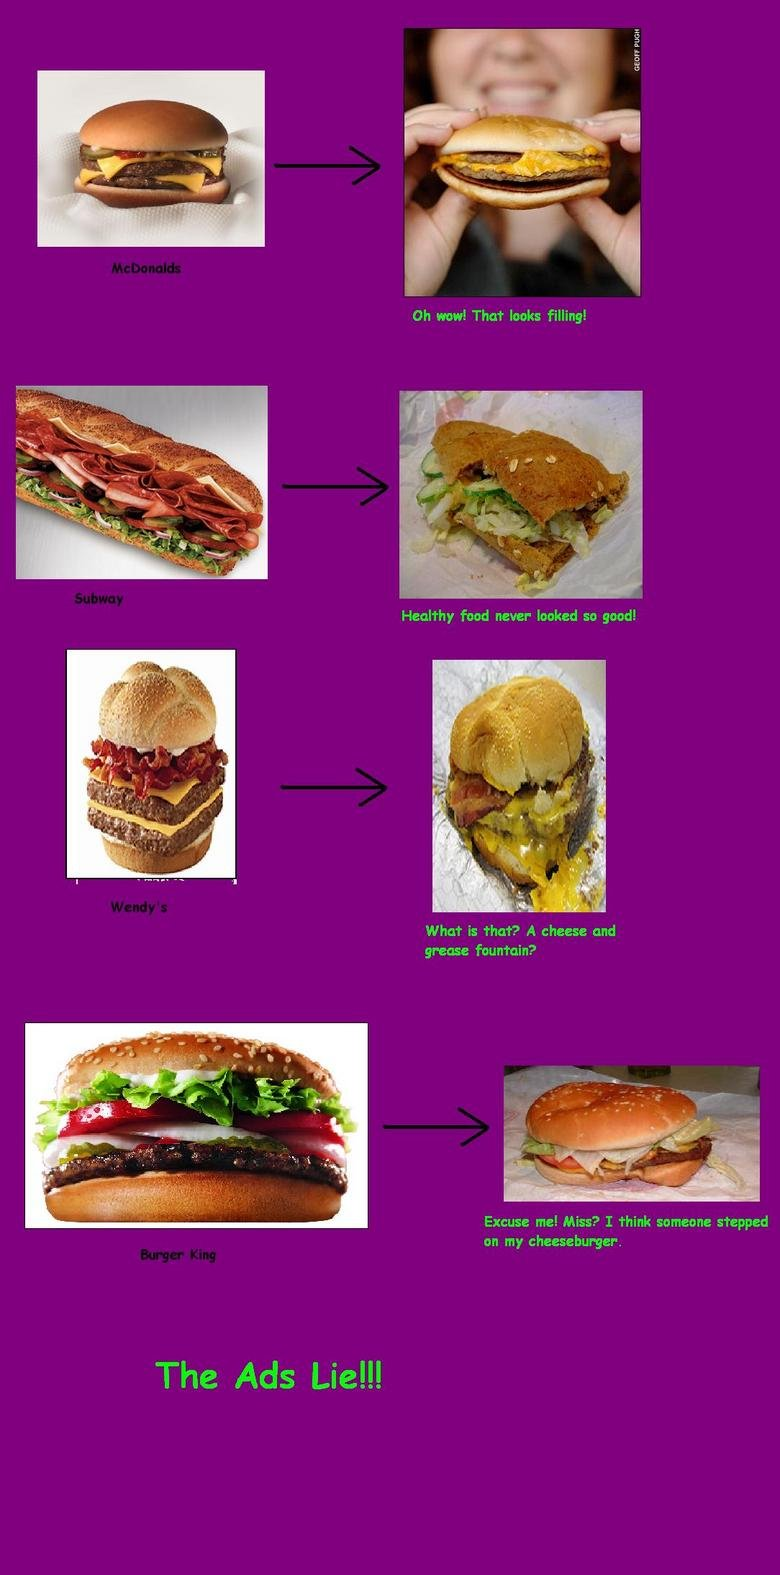 """Ads vs. Reality: Fast Food. Here are some more examples: <a href=""""http://thewvsr.com/adsvsreality.htm"""" target=_blank>thewvsr.com/adsvsreality.ht"""